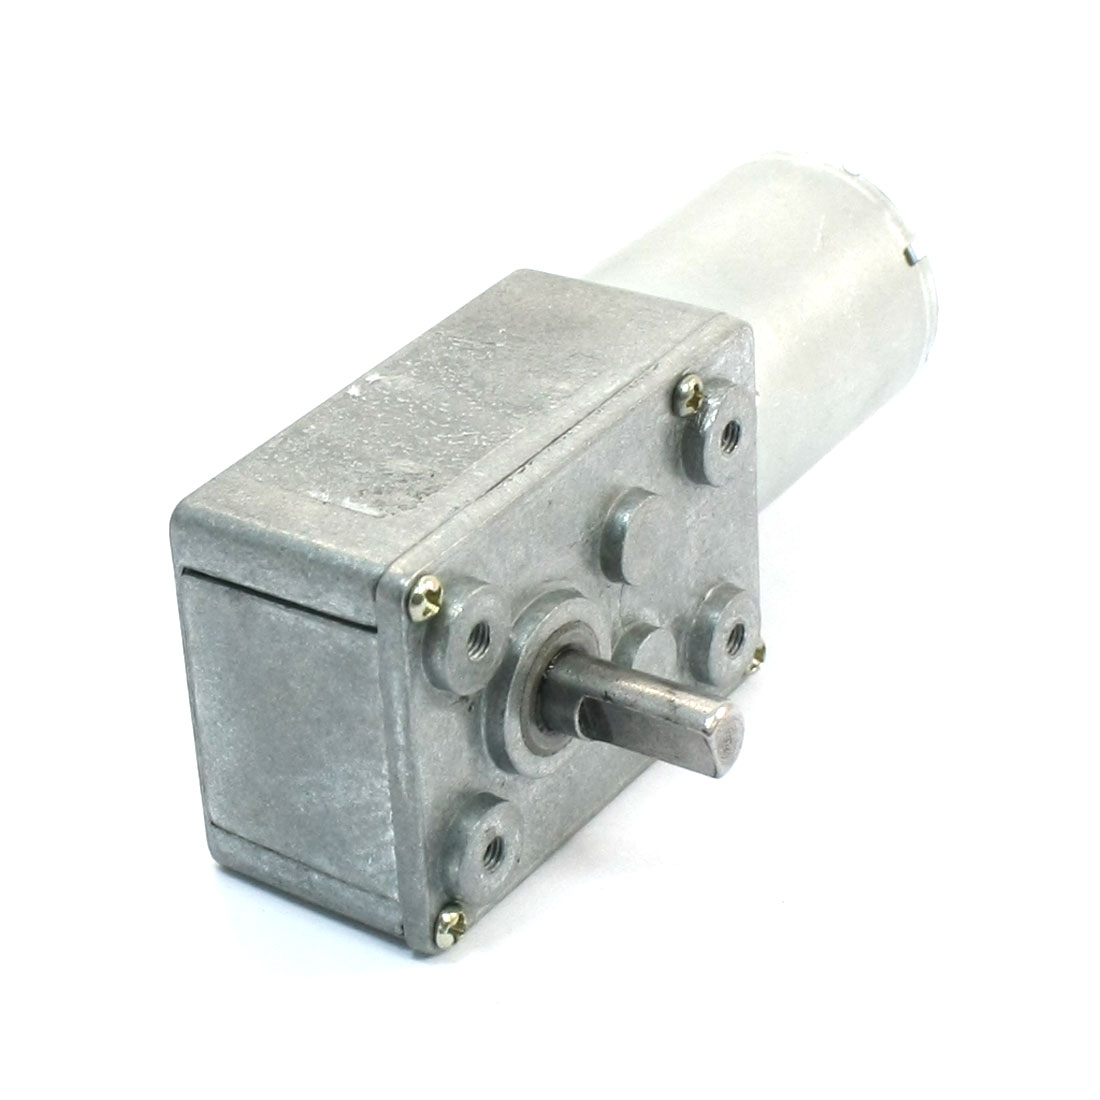 12V 3500 r/min High Torque Speed Reducer DC Worm Gear Motor JSX5300-370